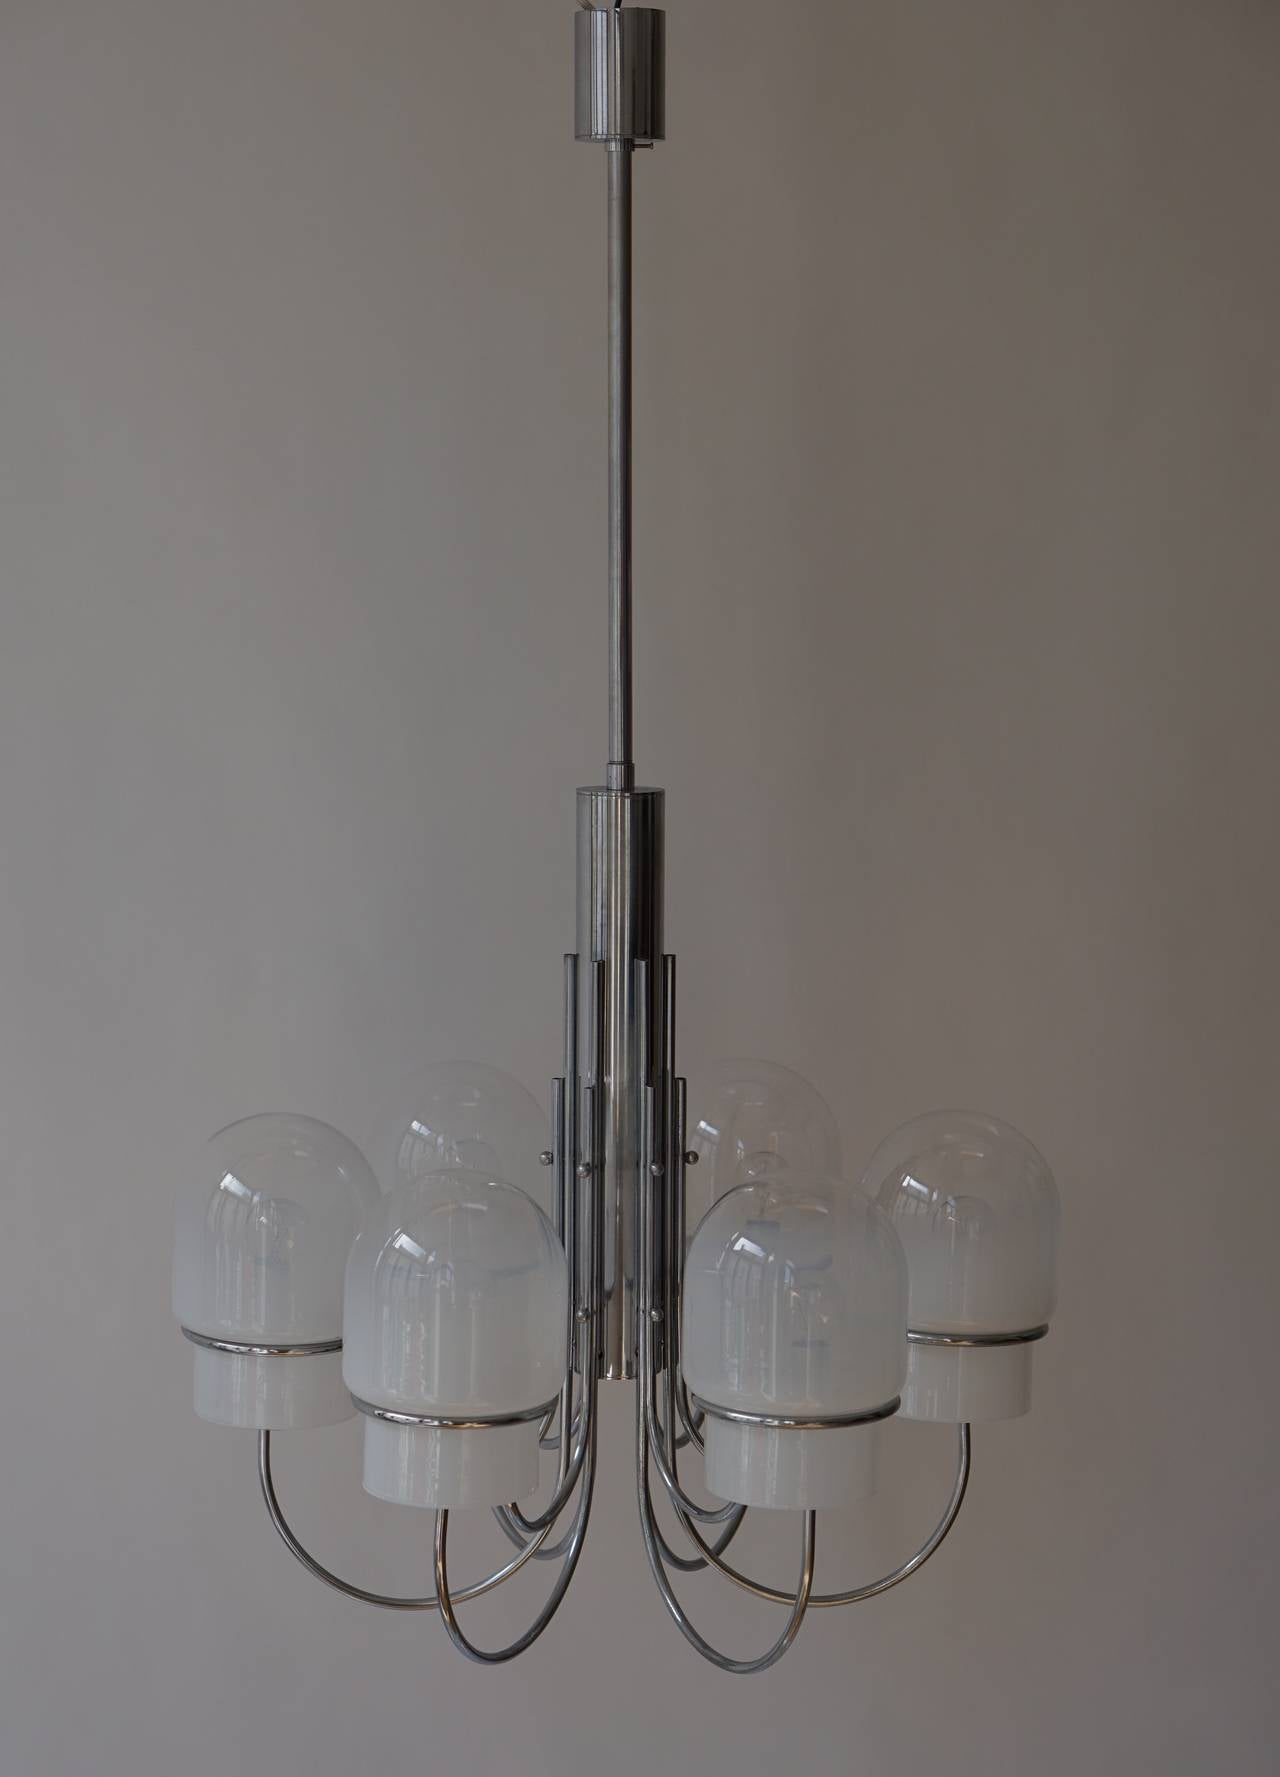 Italian Six Arched Arm Chrome and Milk Glass Chandelier, circa 1960s For Sale 4